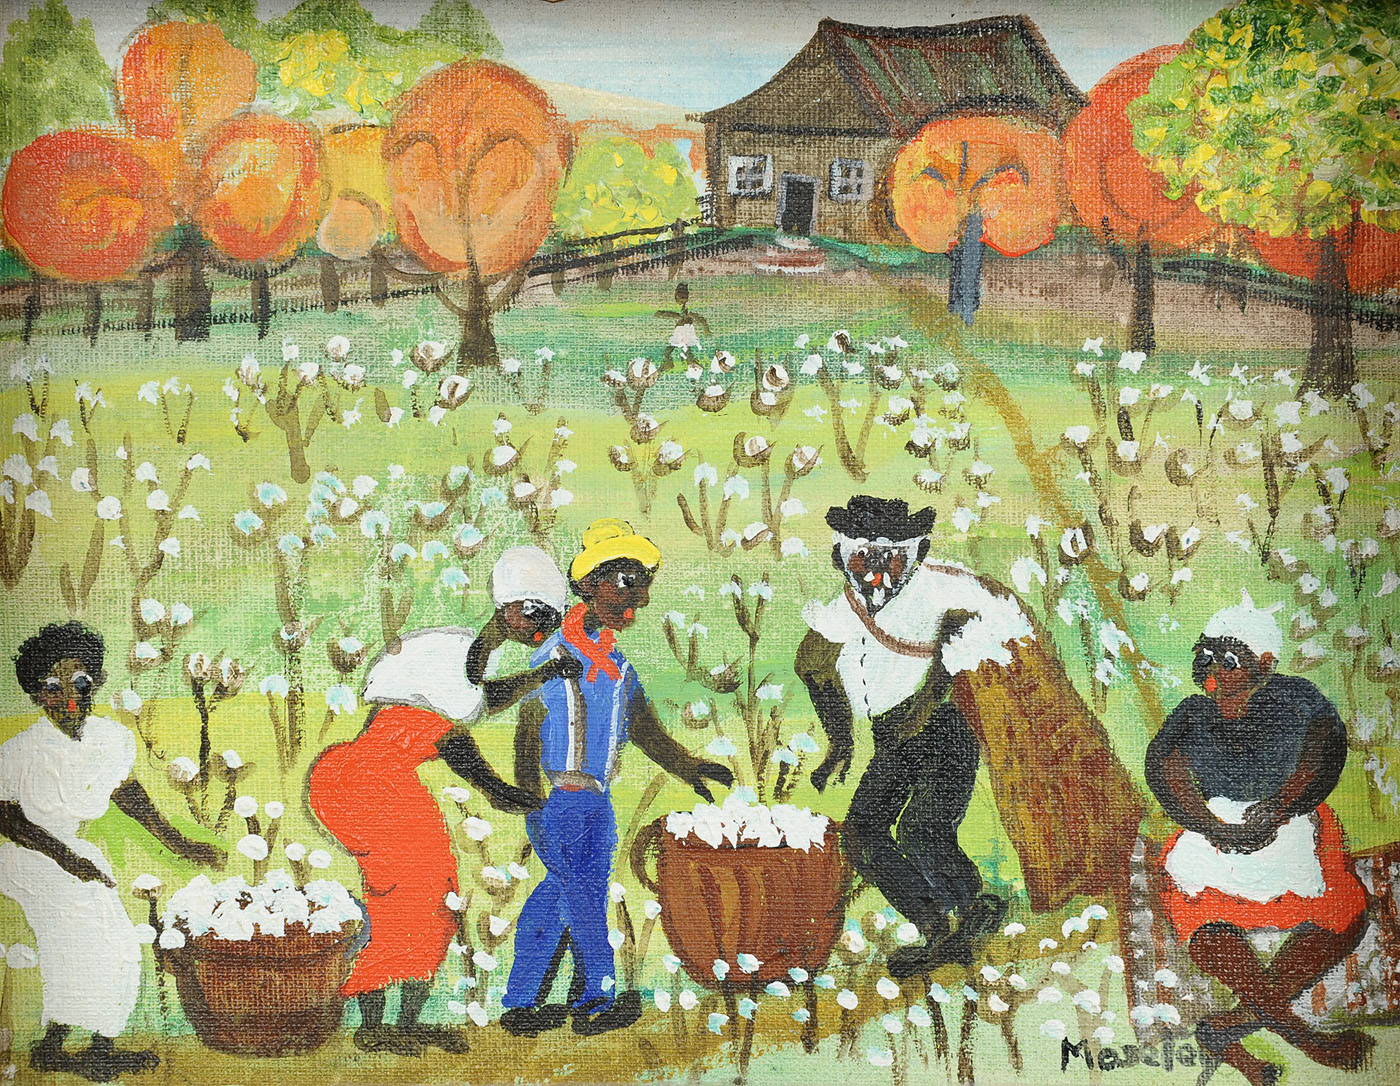 Lot 442 Alice Latimer Moseley Painting Cotton Pickers